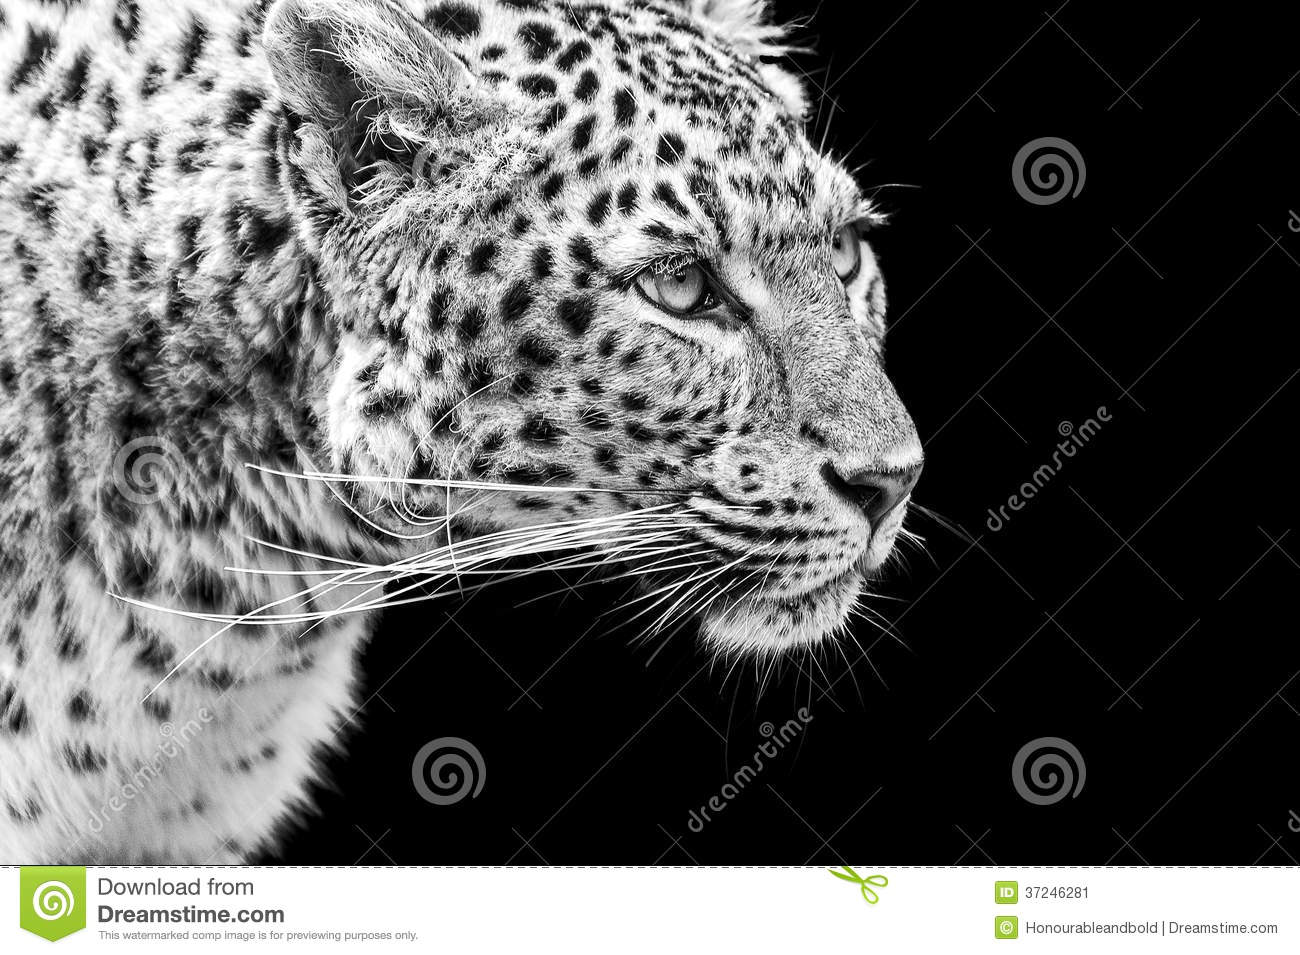 Portrait of Amur Leopard in black and white